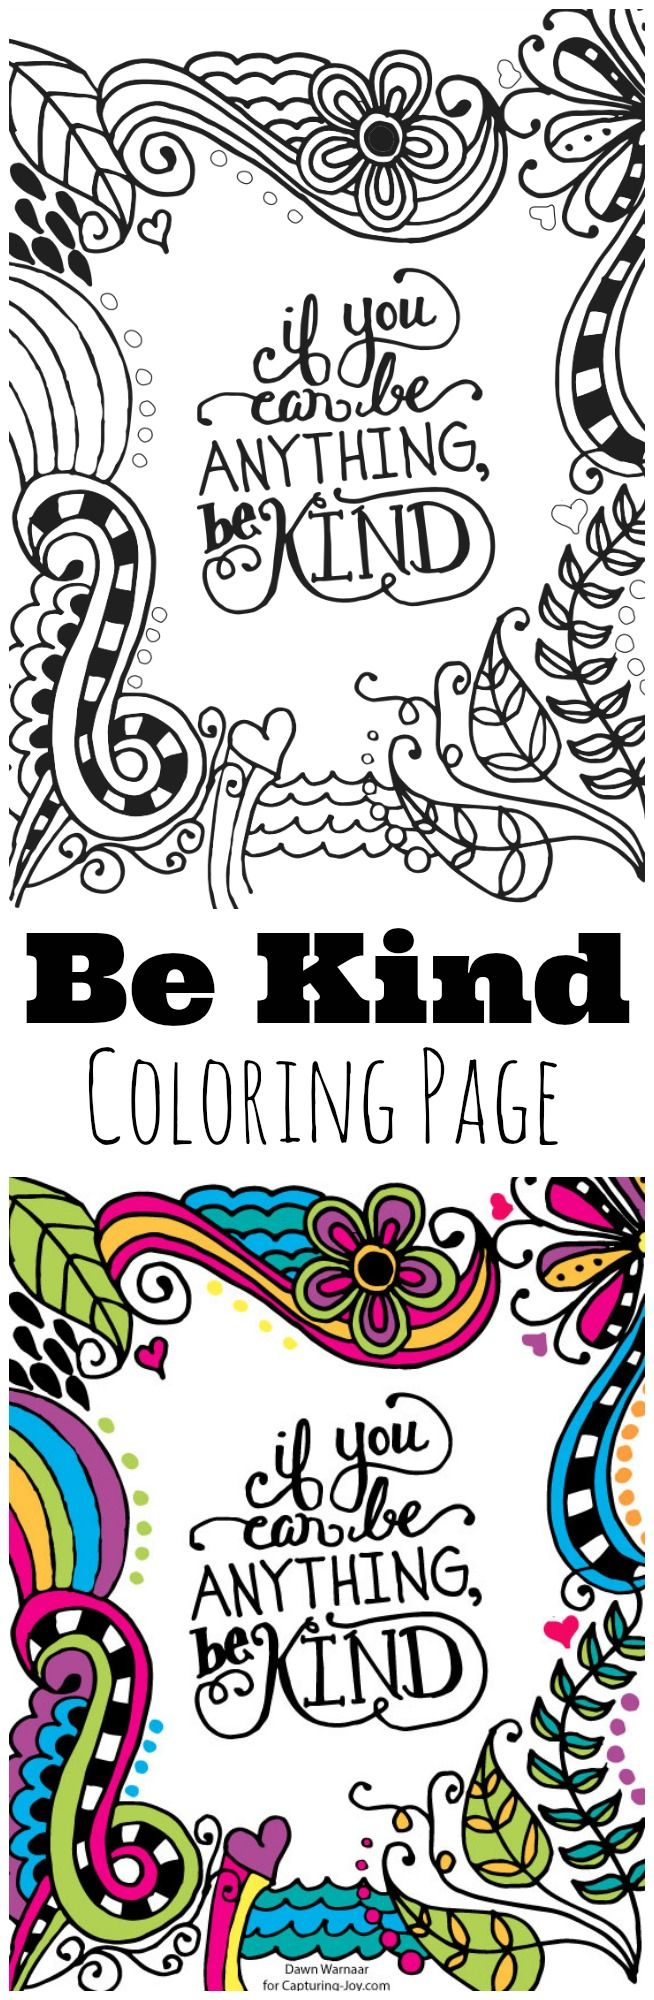 Free Coloring Pages Showing Kindness. Be Kind Kids Coloring Page  great for kids to help encourage kindness hang on Whimsical Print colouring Digital and Free printable